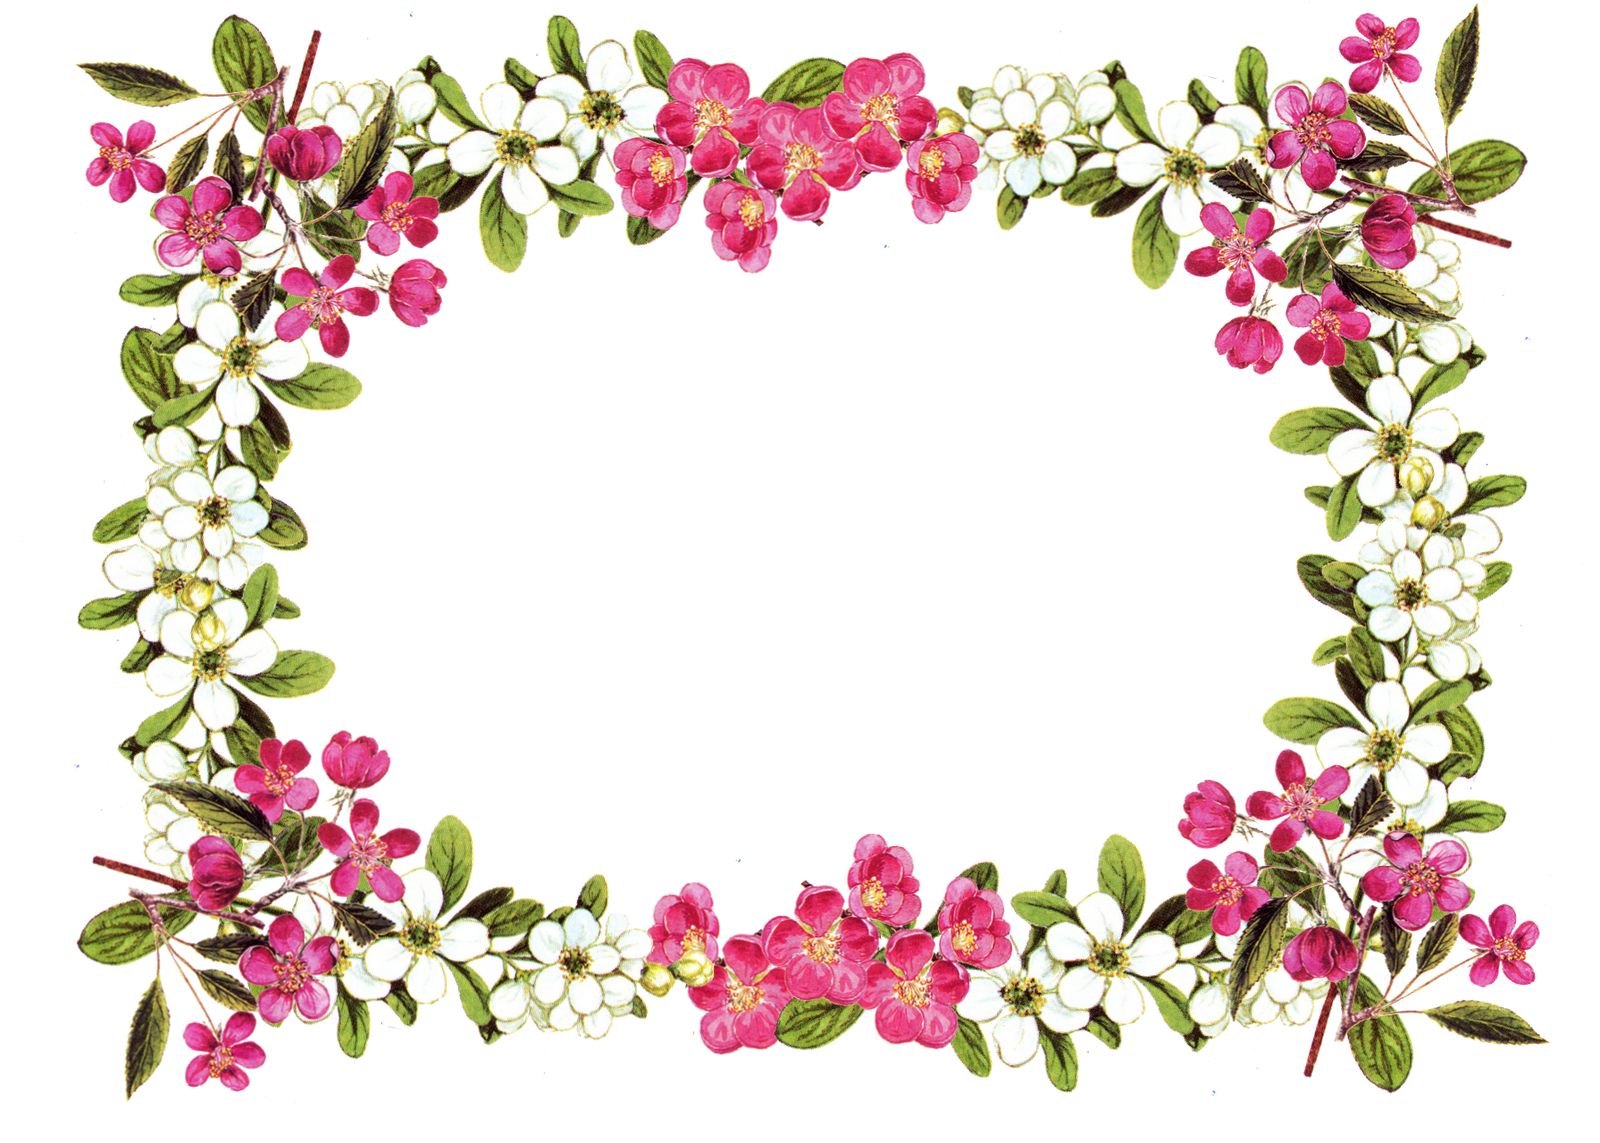 Download free images of flowers picture stock vintage flower frame / border png; free download; digital ... picture stock